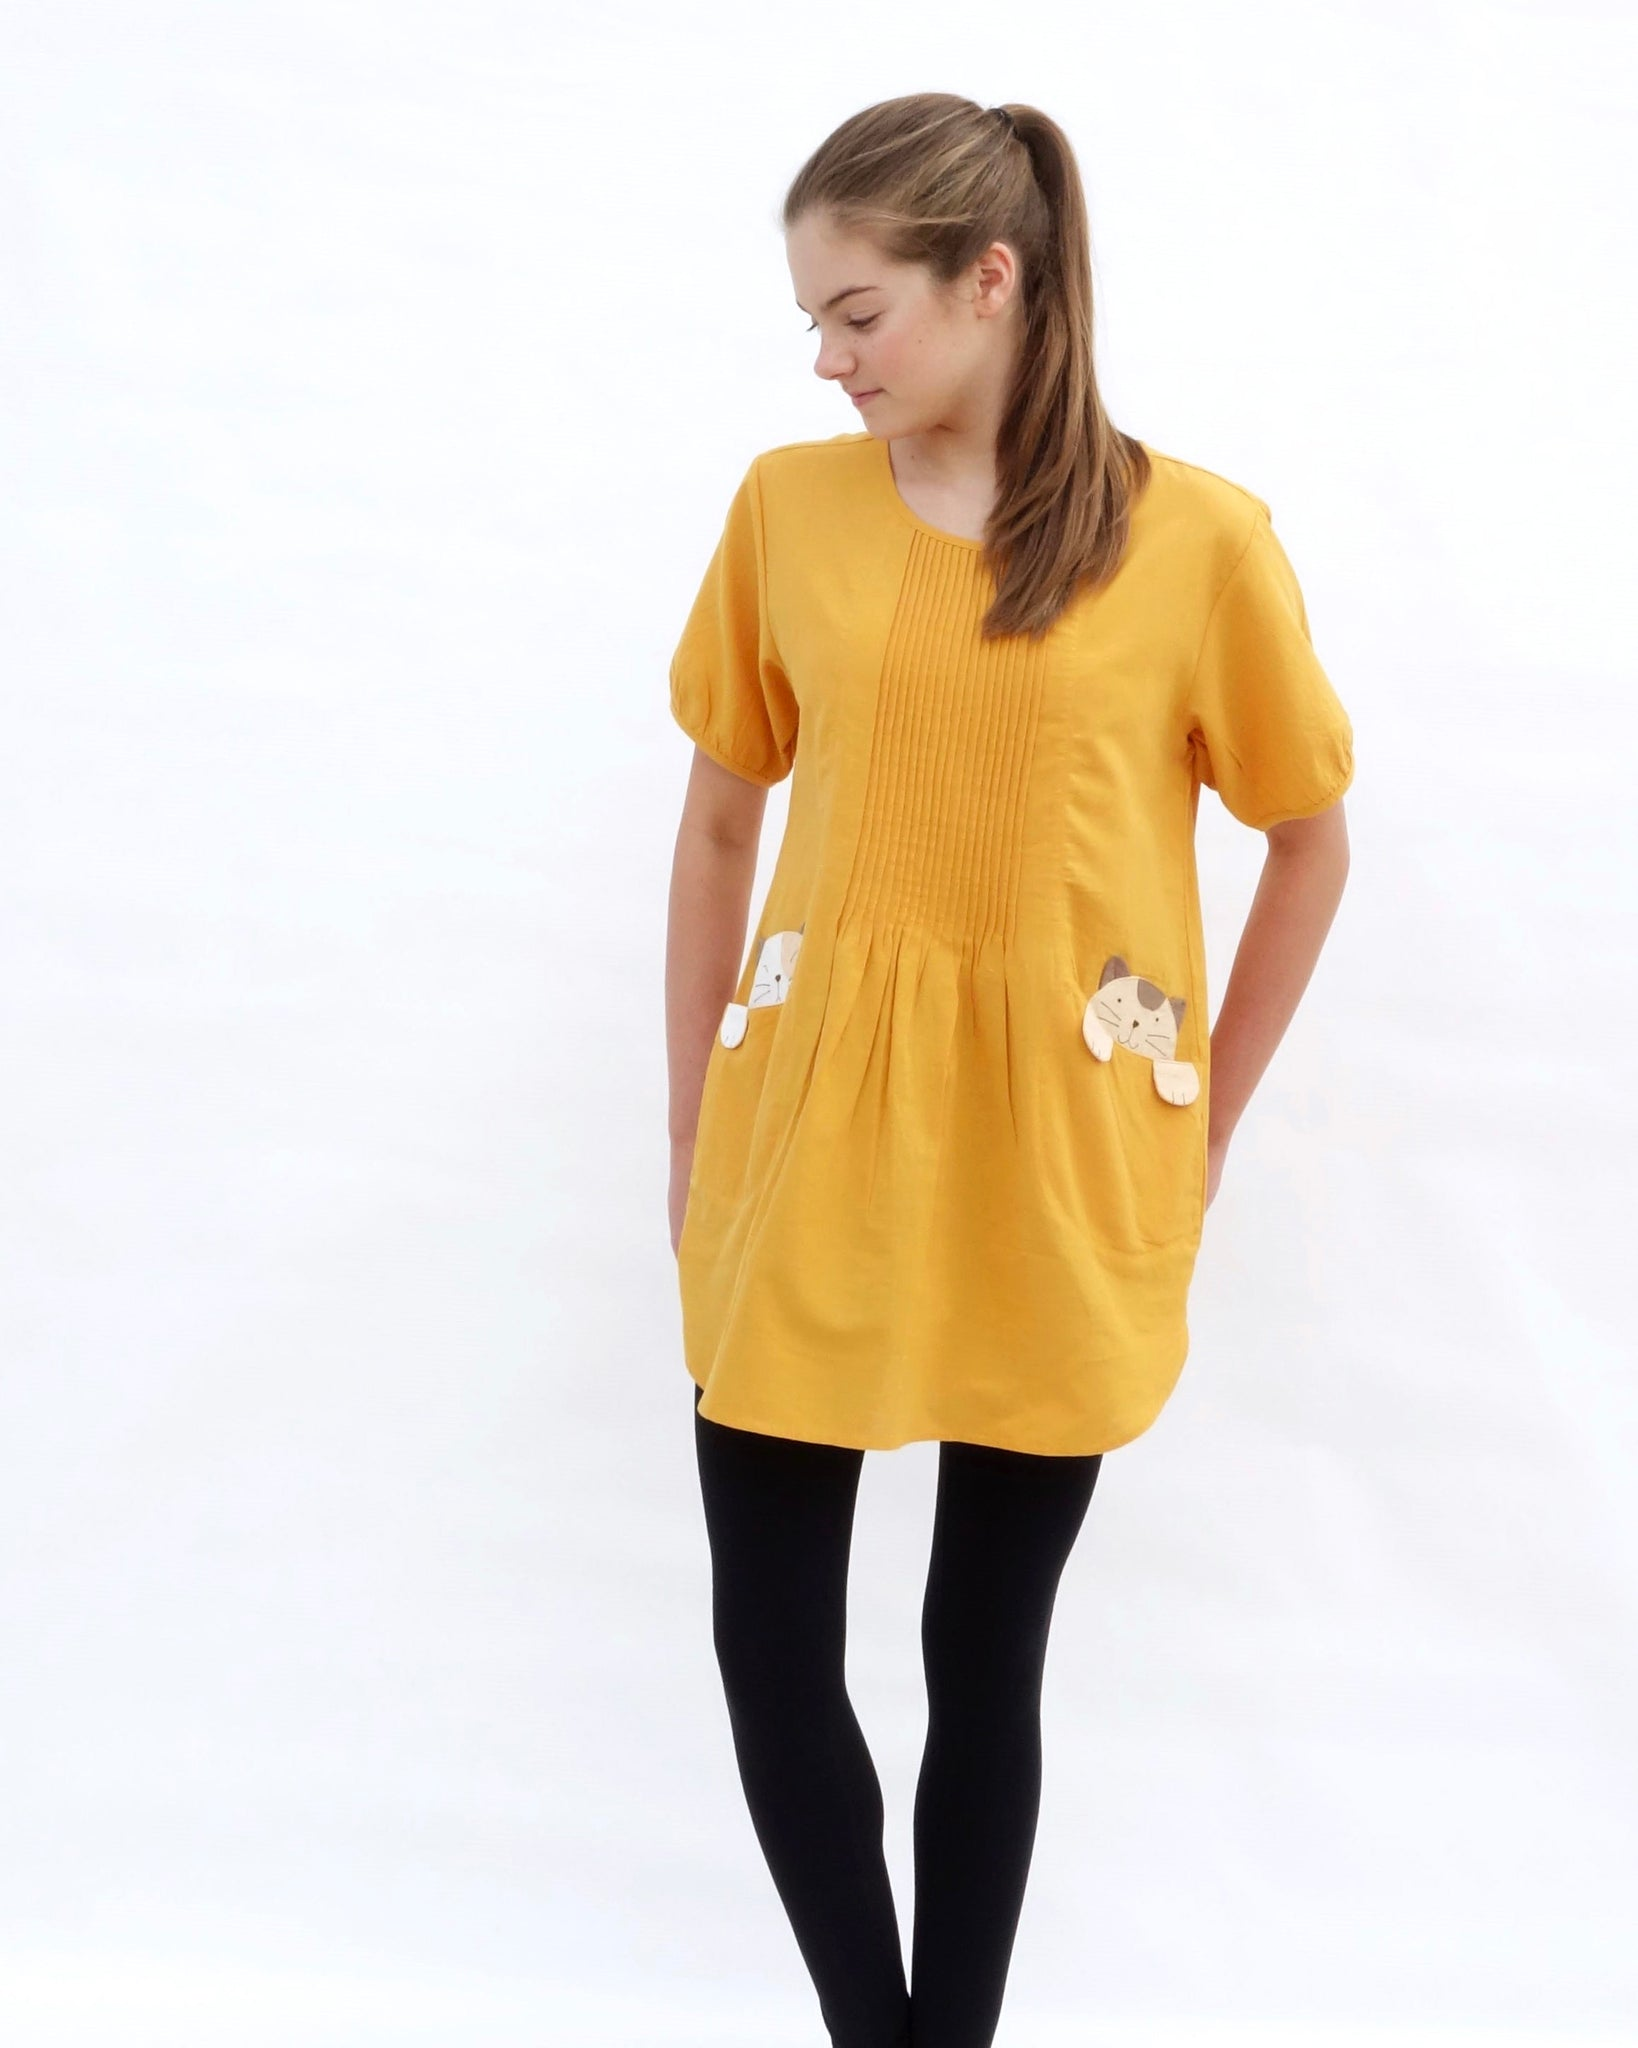 A woman with hands on the sides, wearing a yellow cotton cat-themed tunic dress for women with two cats/kittens on the pockets and black leggings underneath. The tunic dress has puffed sleeves and slits on the side.